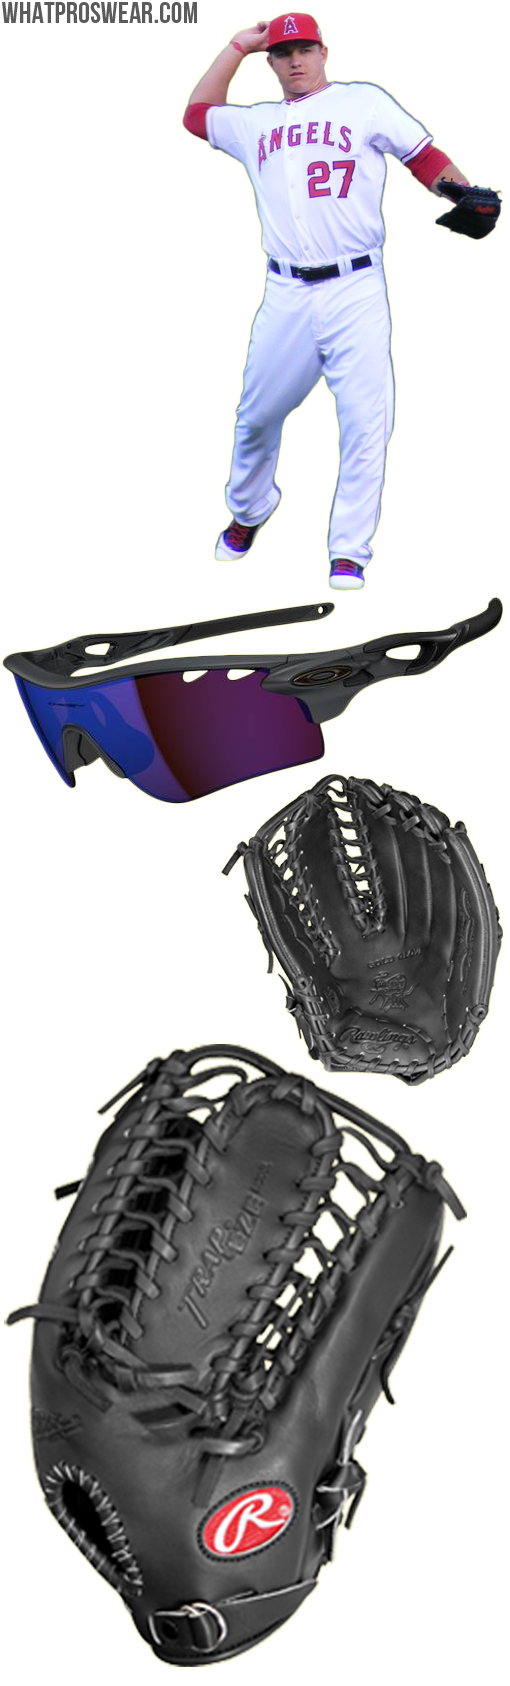 mike trout glove model, mike trout sunglasses, rawlings protb24, oakley radarlock path